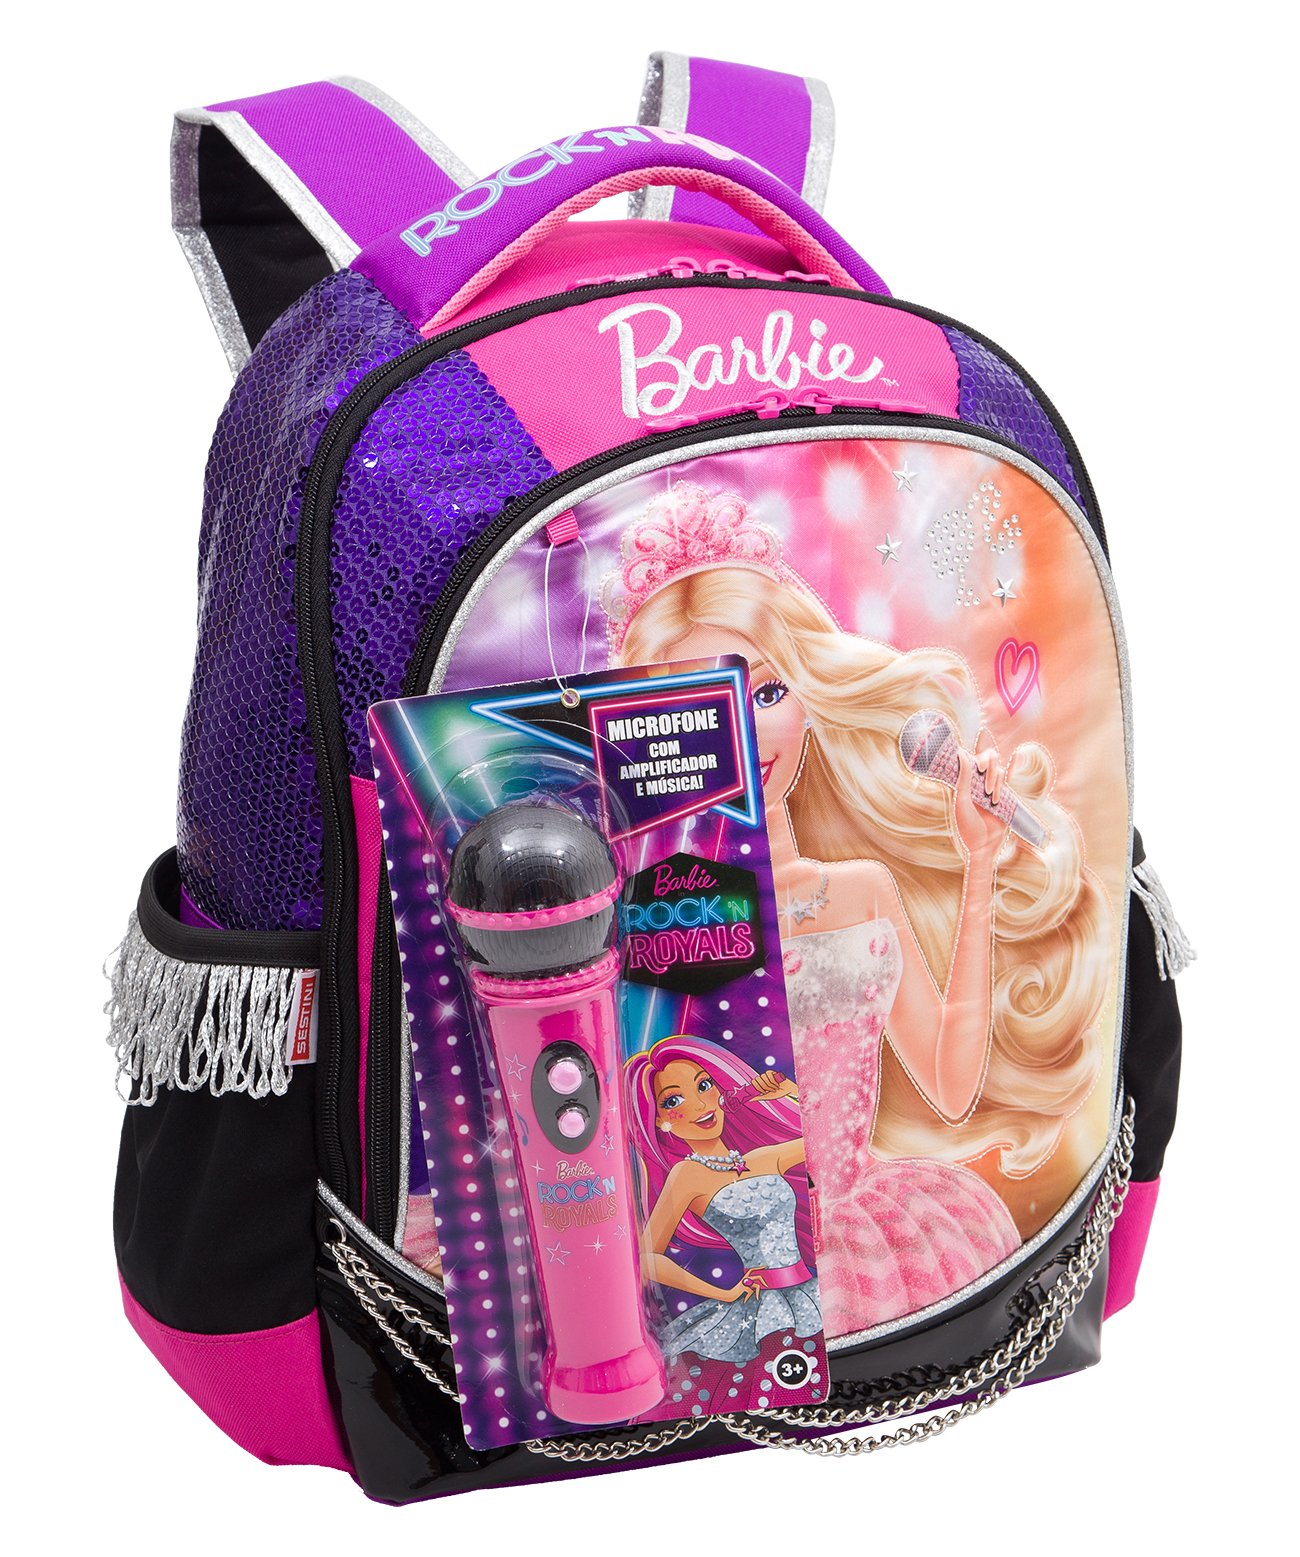 Mochila Grande Barbie Rock Royals